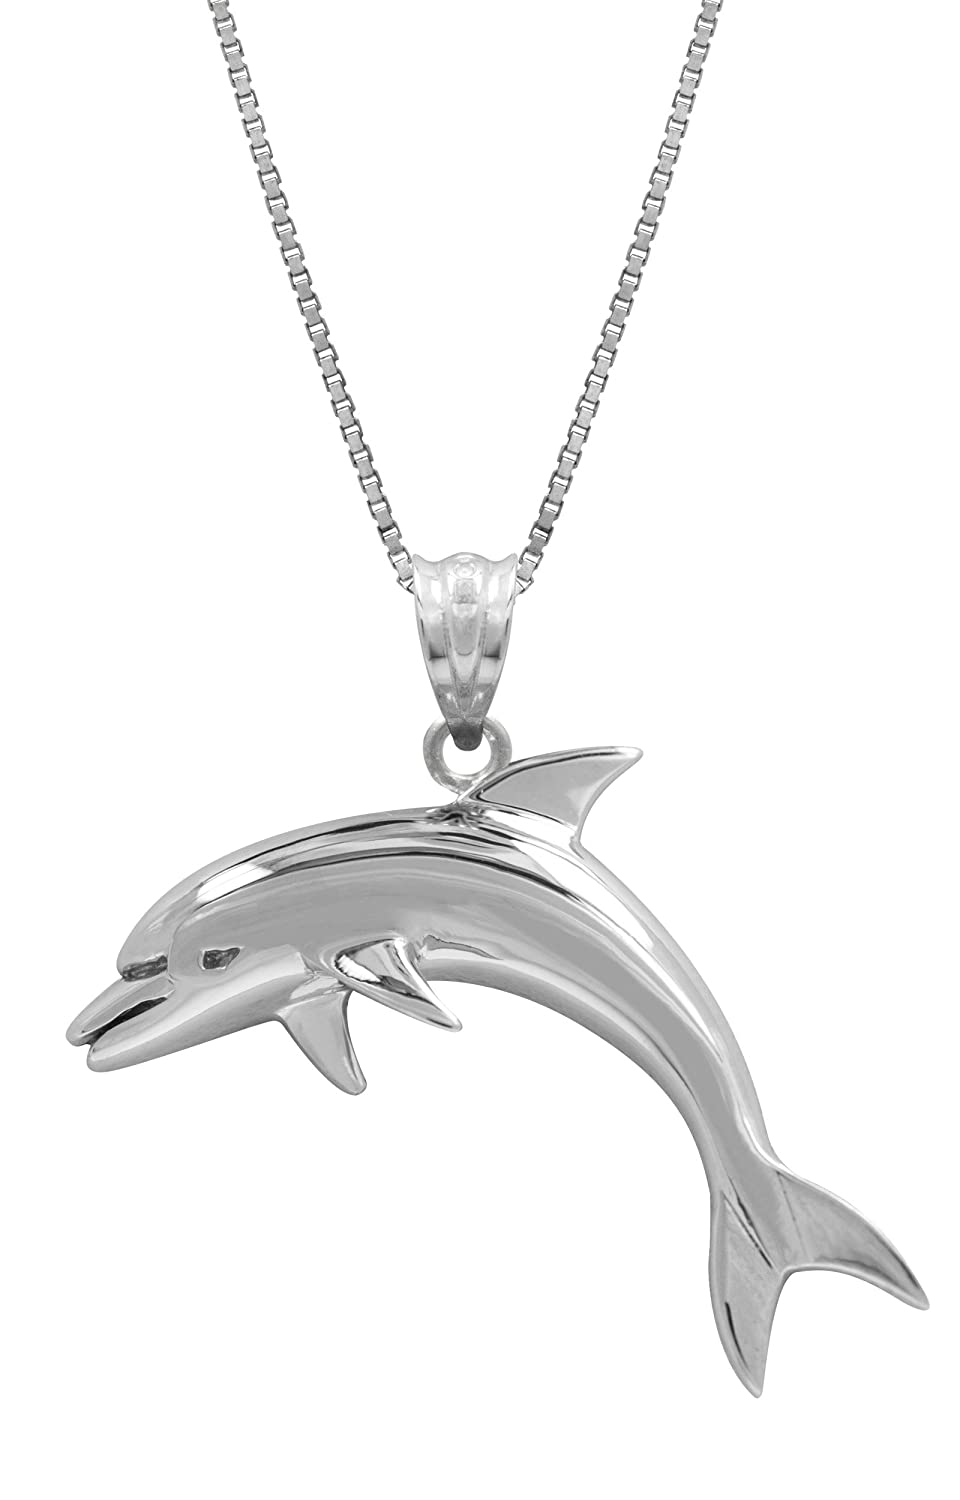 dolphin women products color gift necklace steel princess jewelry pendant men backwoods animal black gold for stainless wholesale